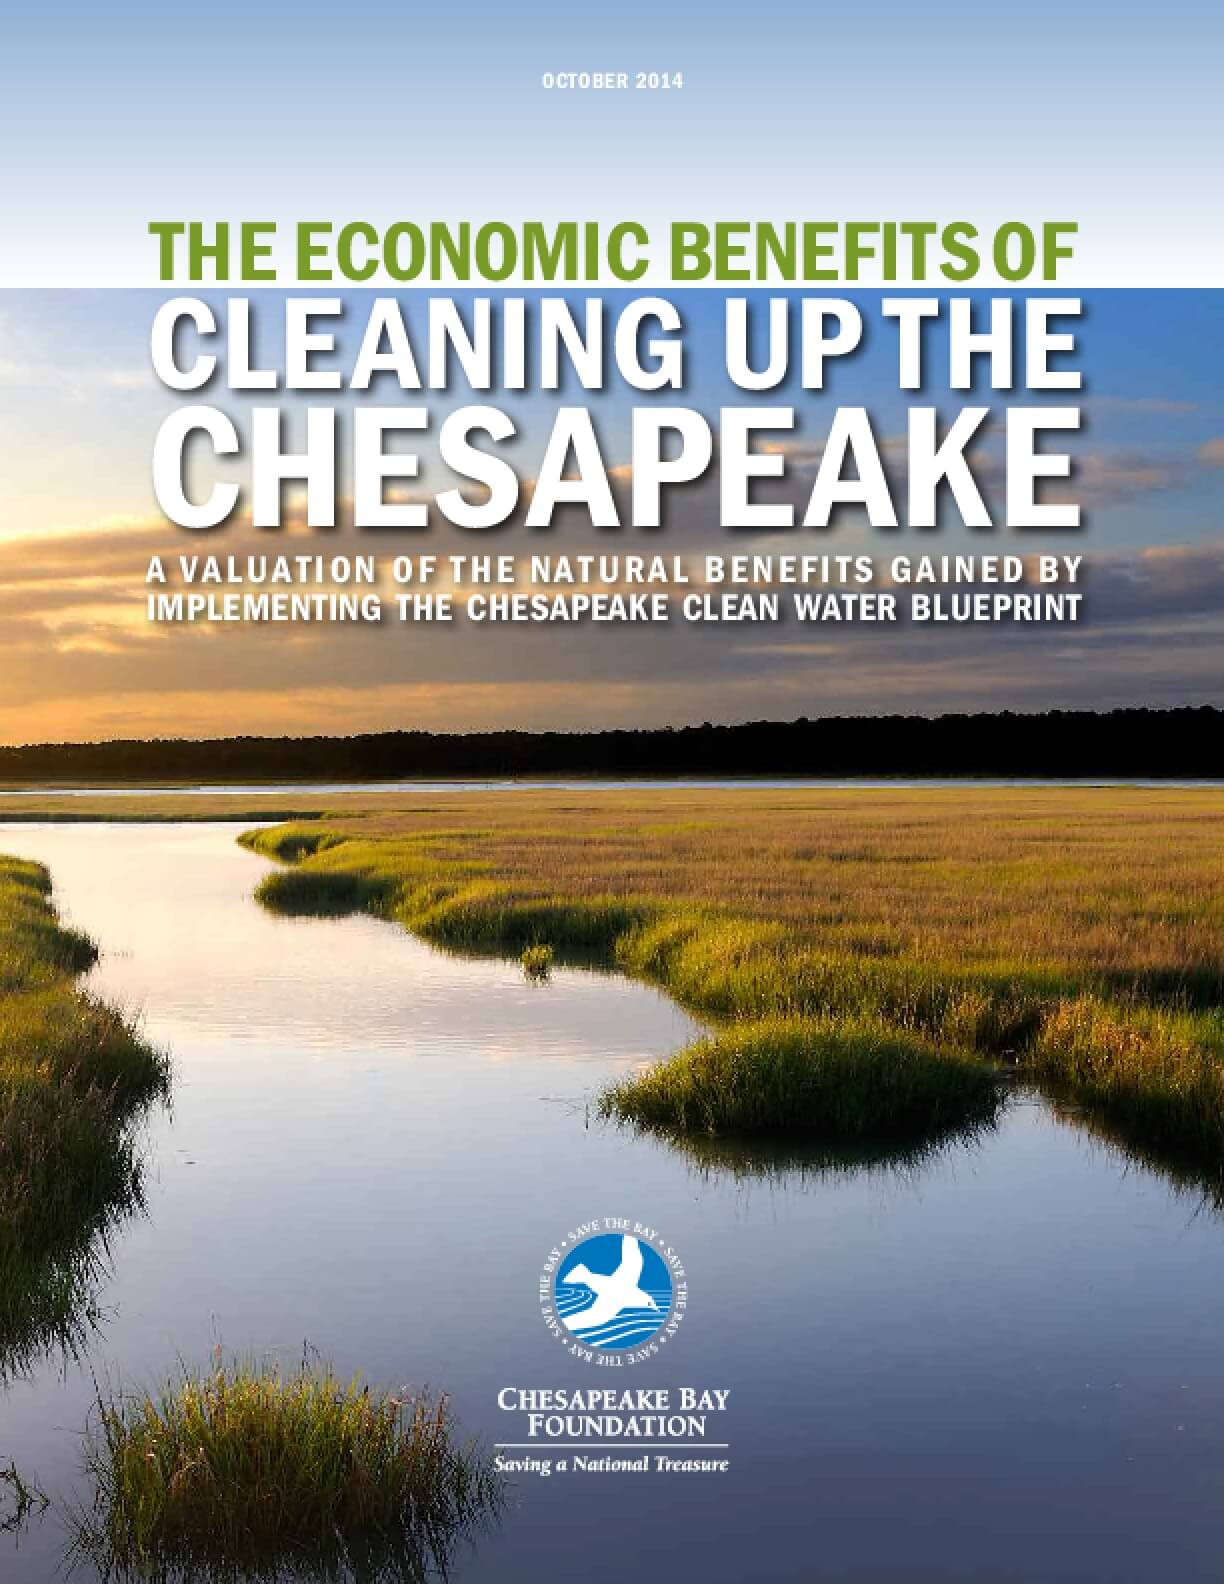 The Economic Benefits of Cleaning Up the Chesapeake